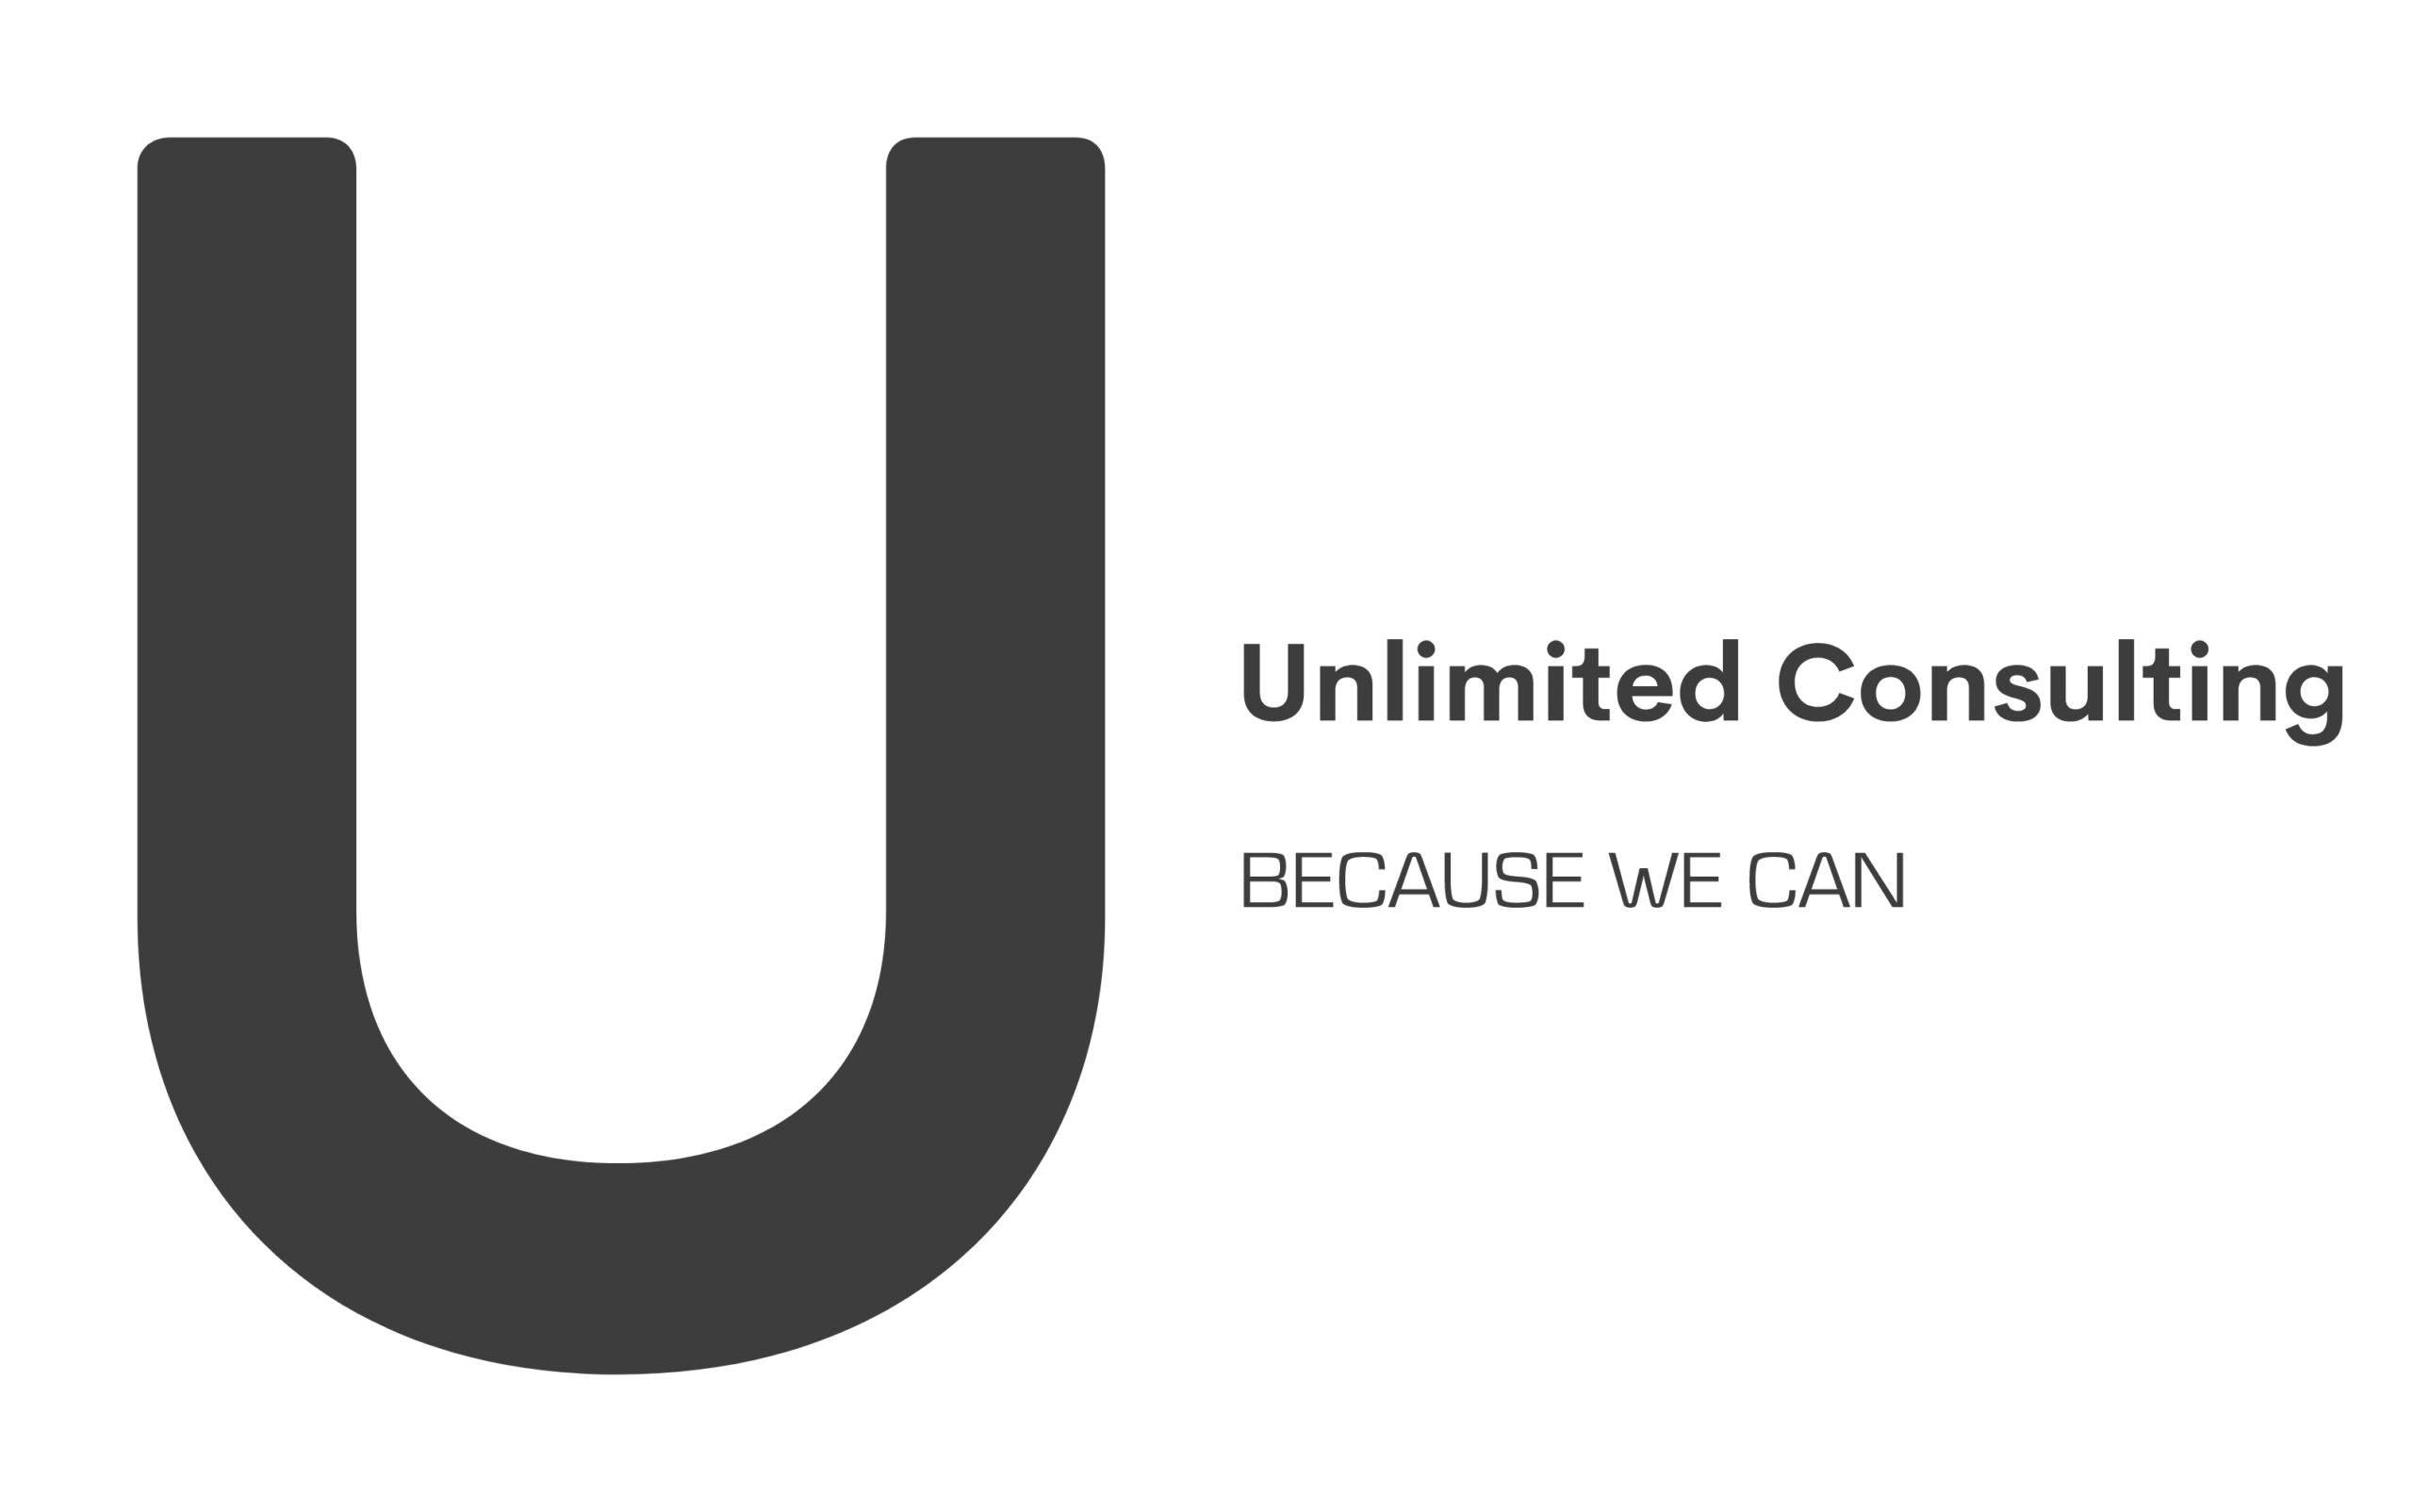 Unlimited Consulting Logo